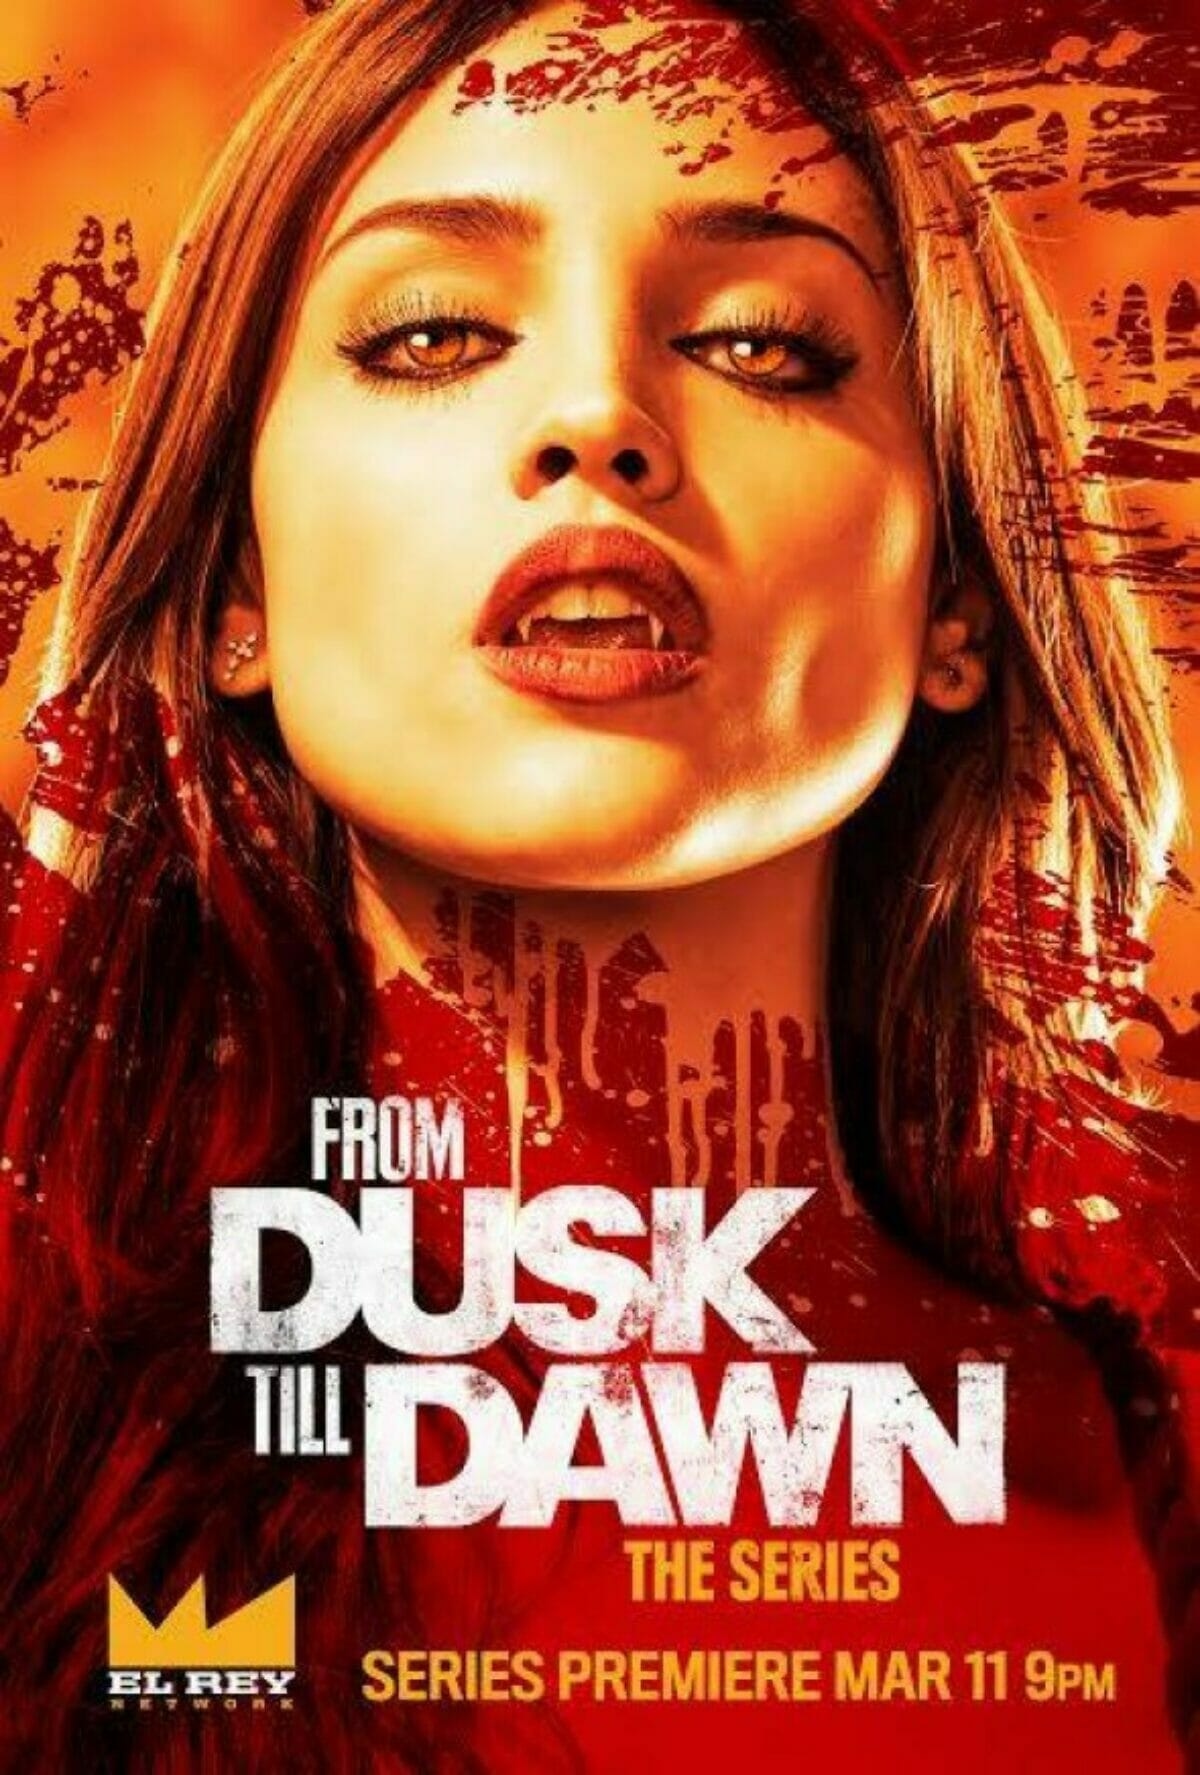 from-dusk-till-dawn-the-series-poster-